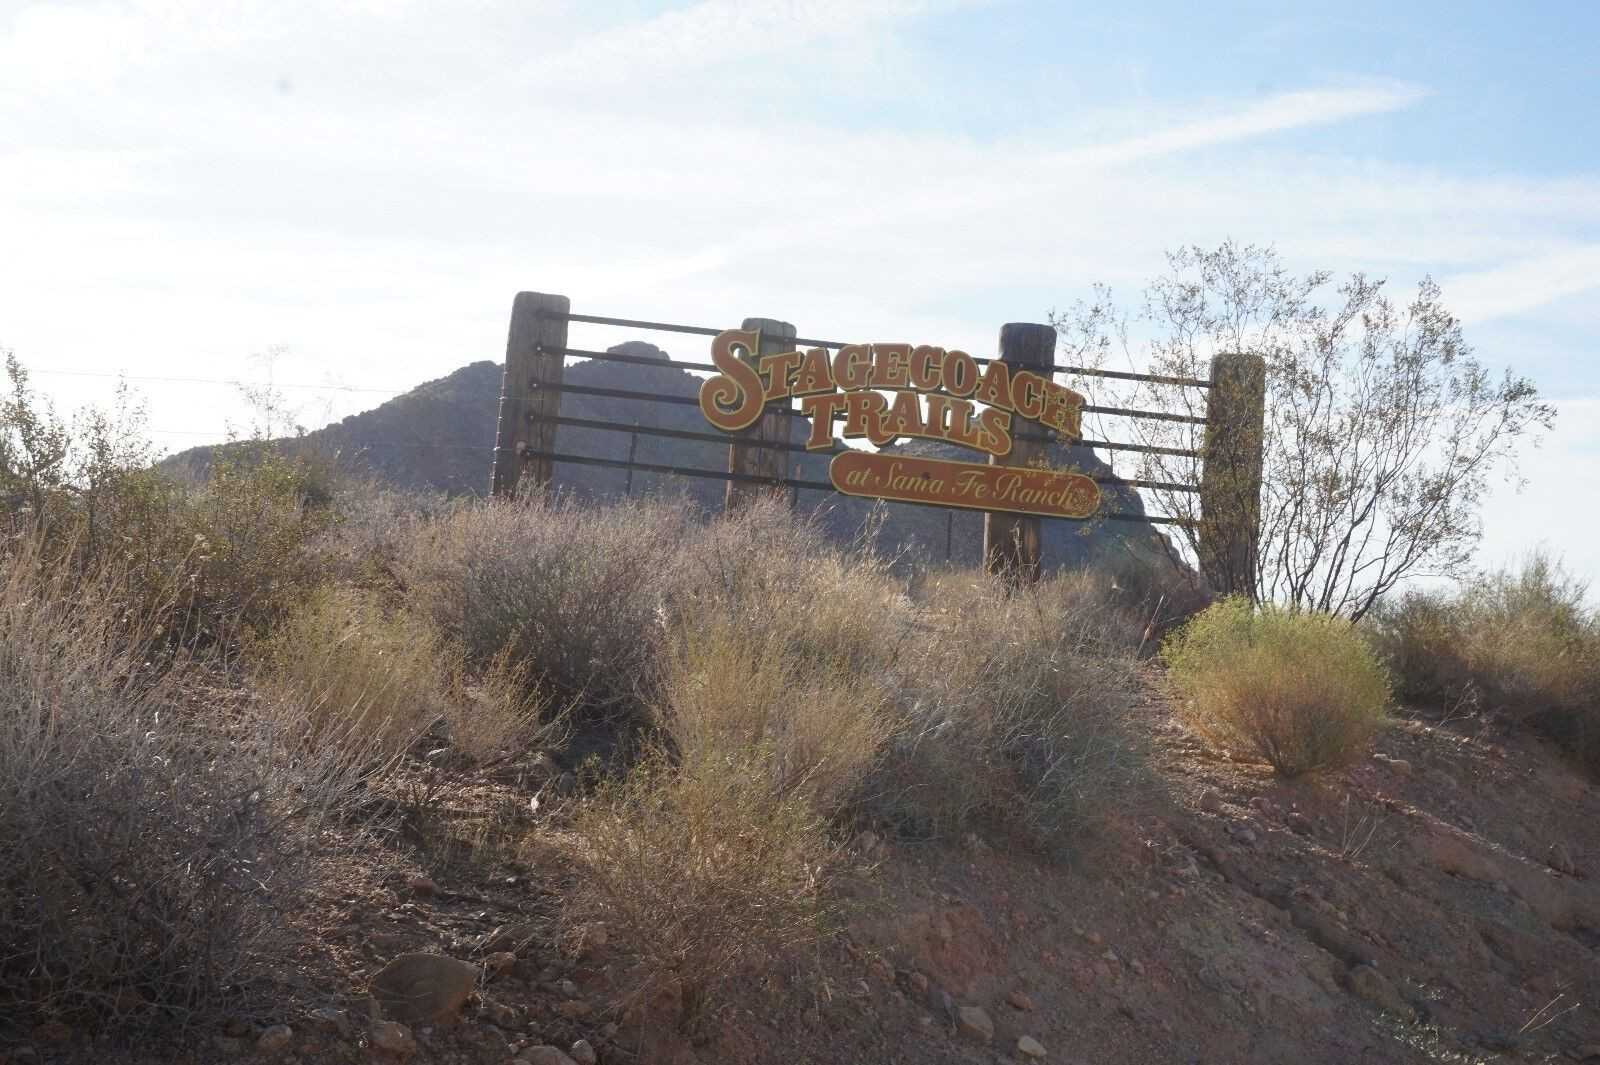 40.02 ACRES STAGECOACH TRAILS YUCCA ARIZONA (DOWN PAYMENT AND MONTHLY PAYMENTS)